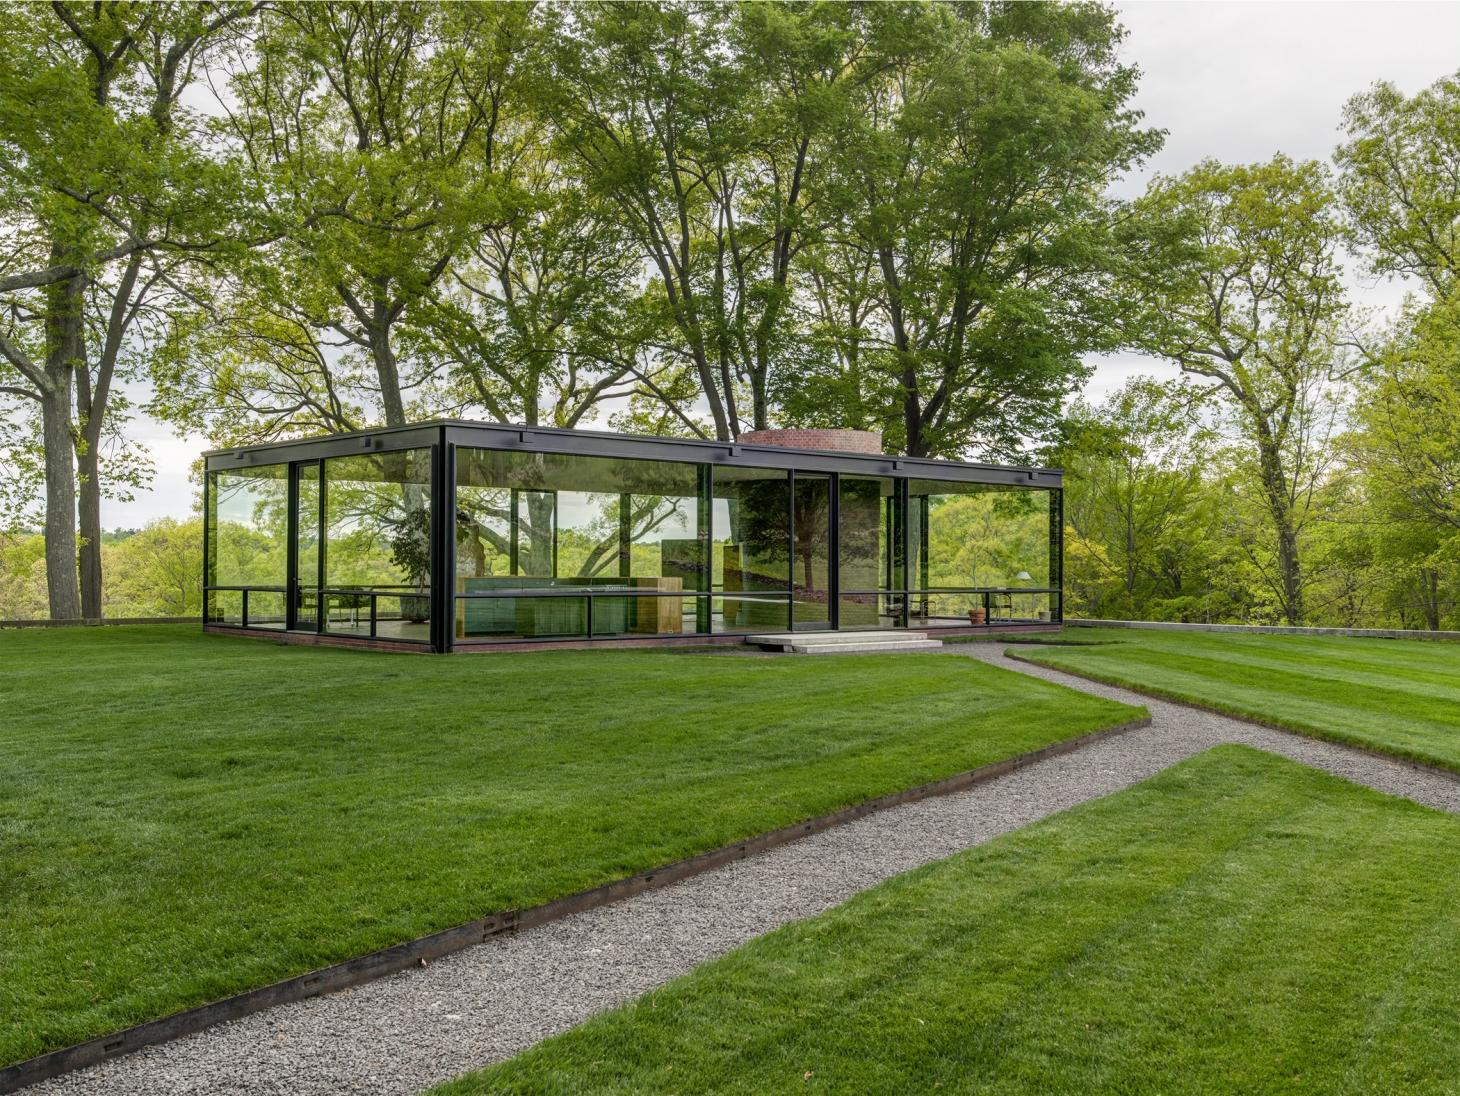 Philip Johnson and the Glass House